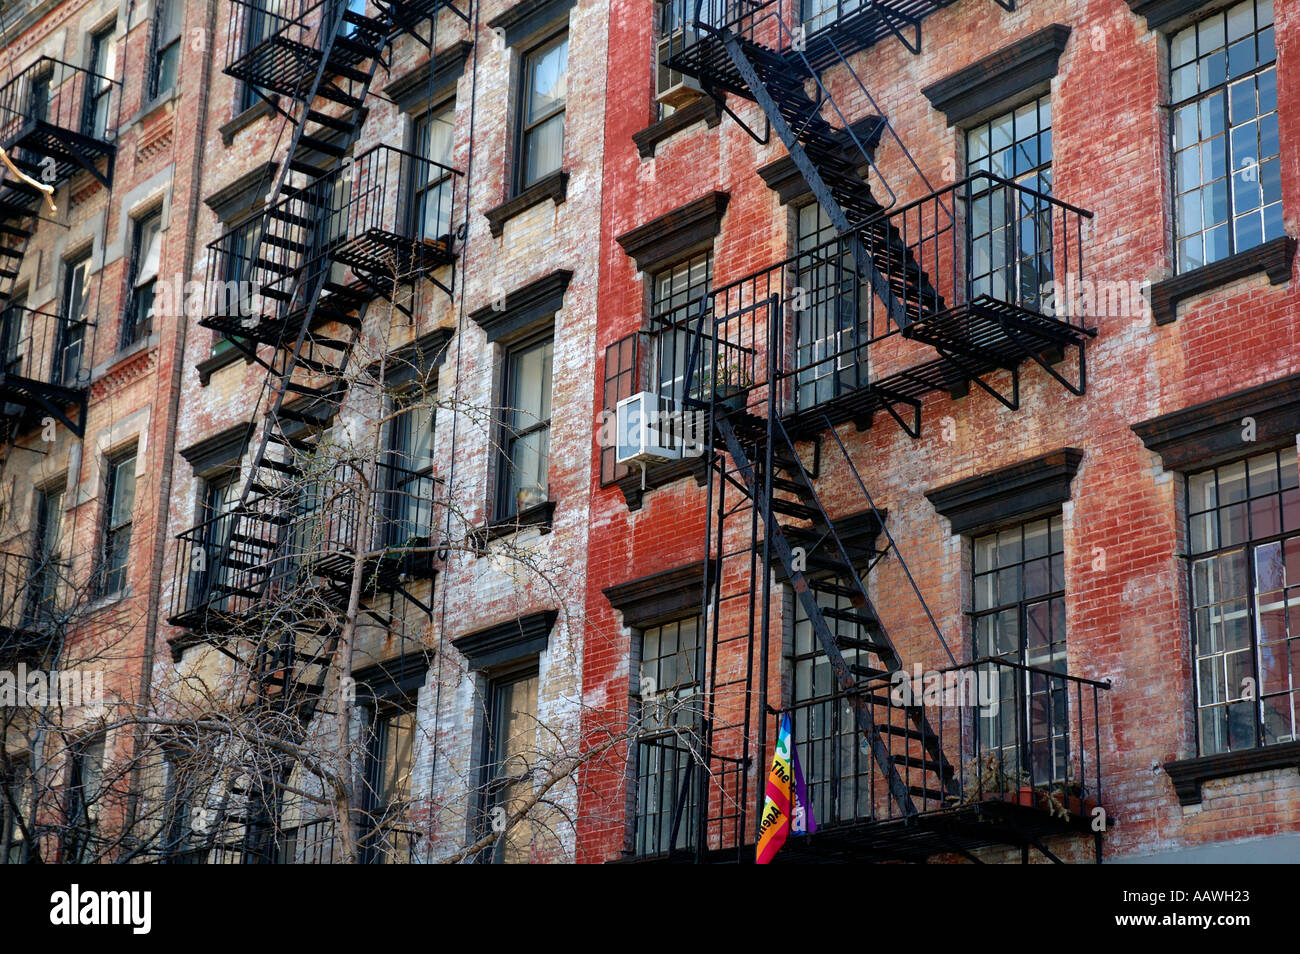 New York Apartment Buildings In Soho Are Of Manhatten With Typical Exterior  Fire Escape Ladders.